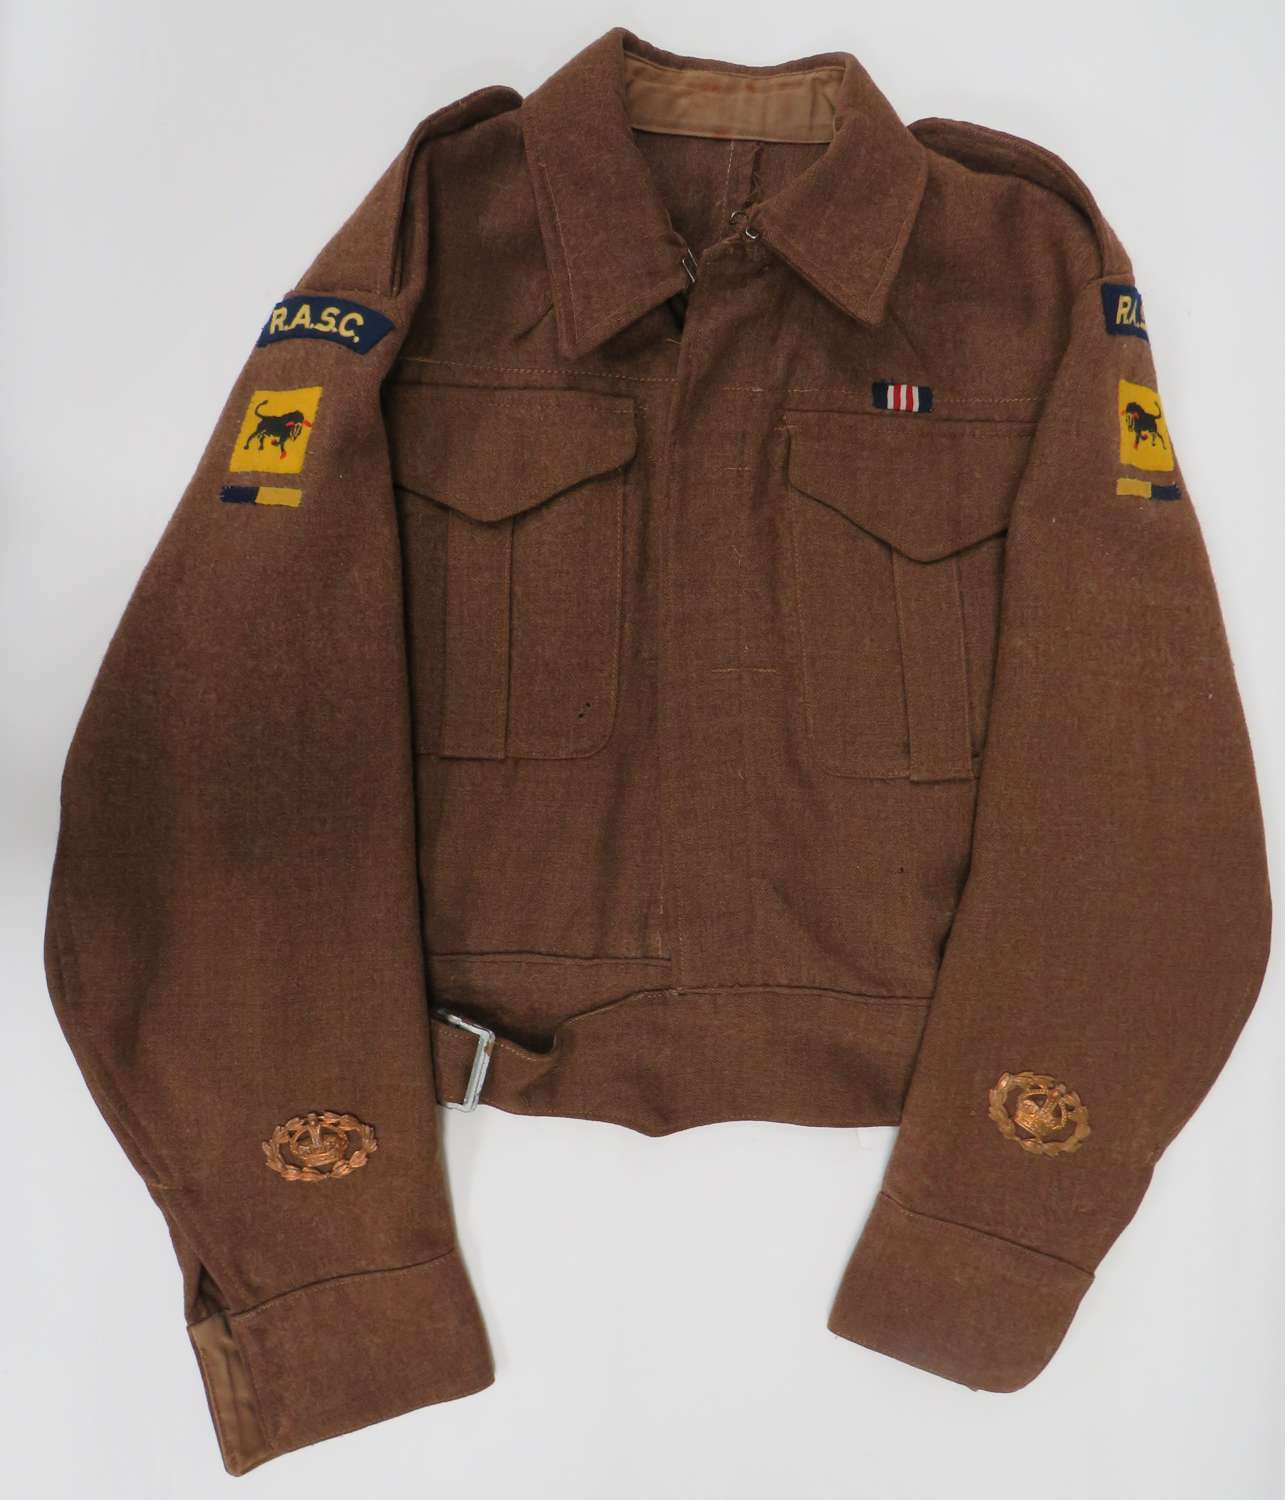 WW 2 R.A.S.C 11th Armoured Division Battle Dress Jacket